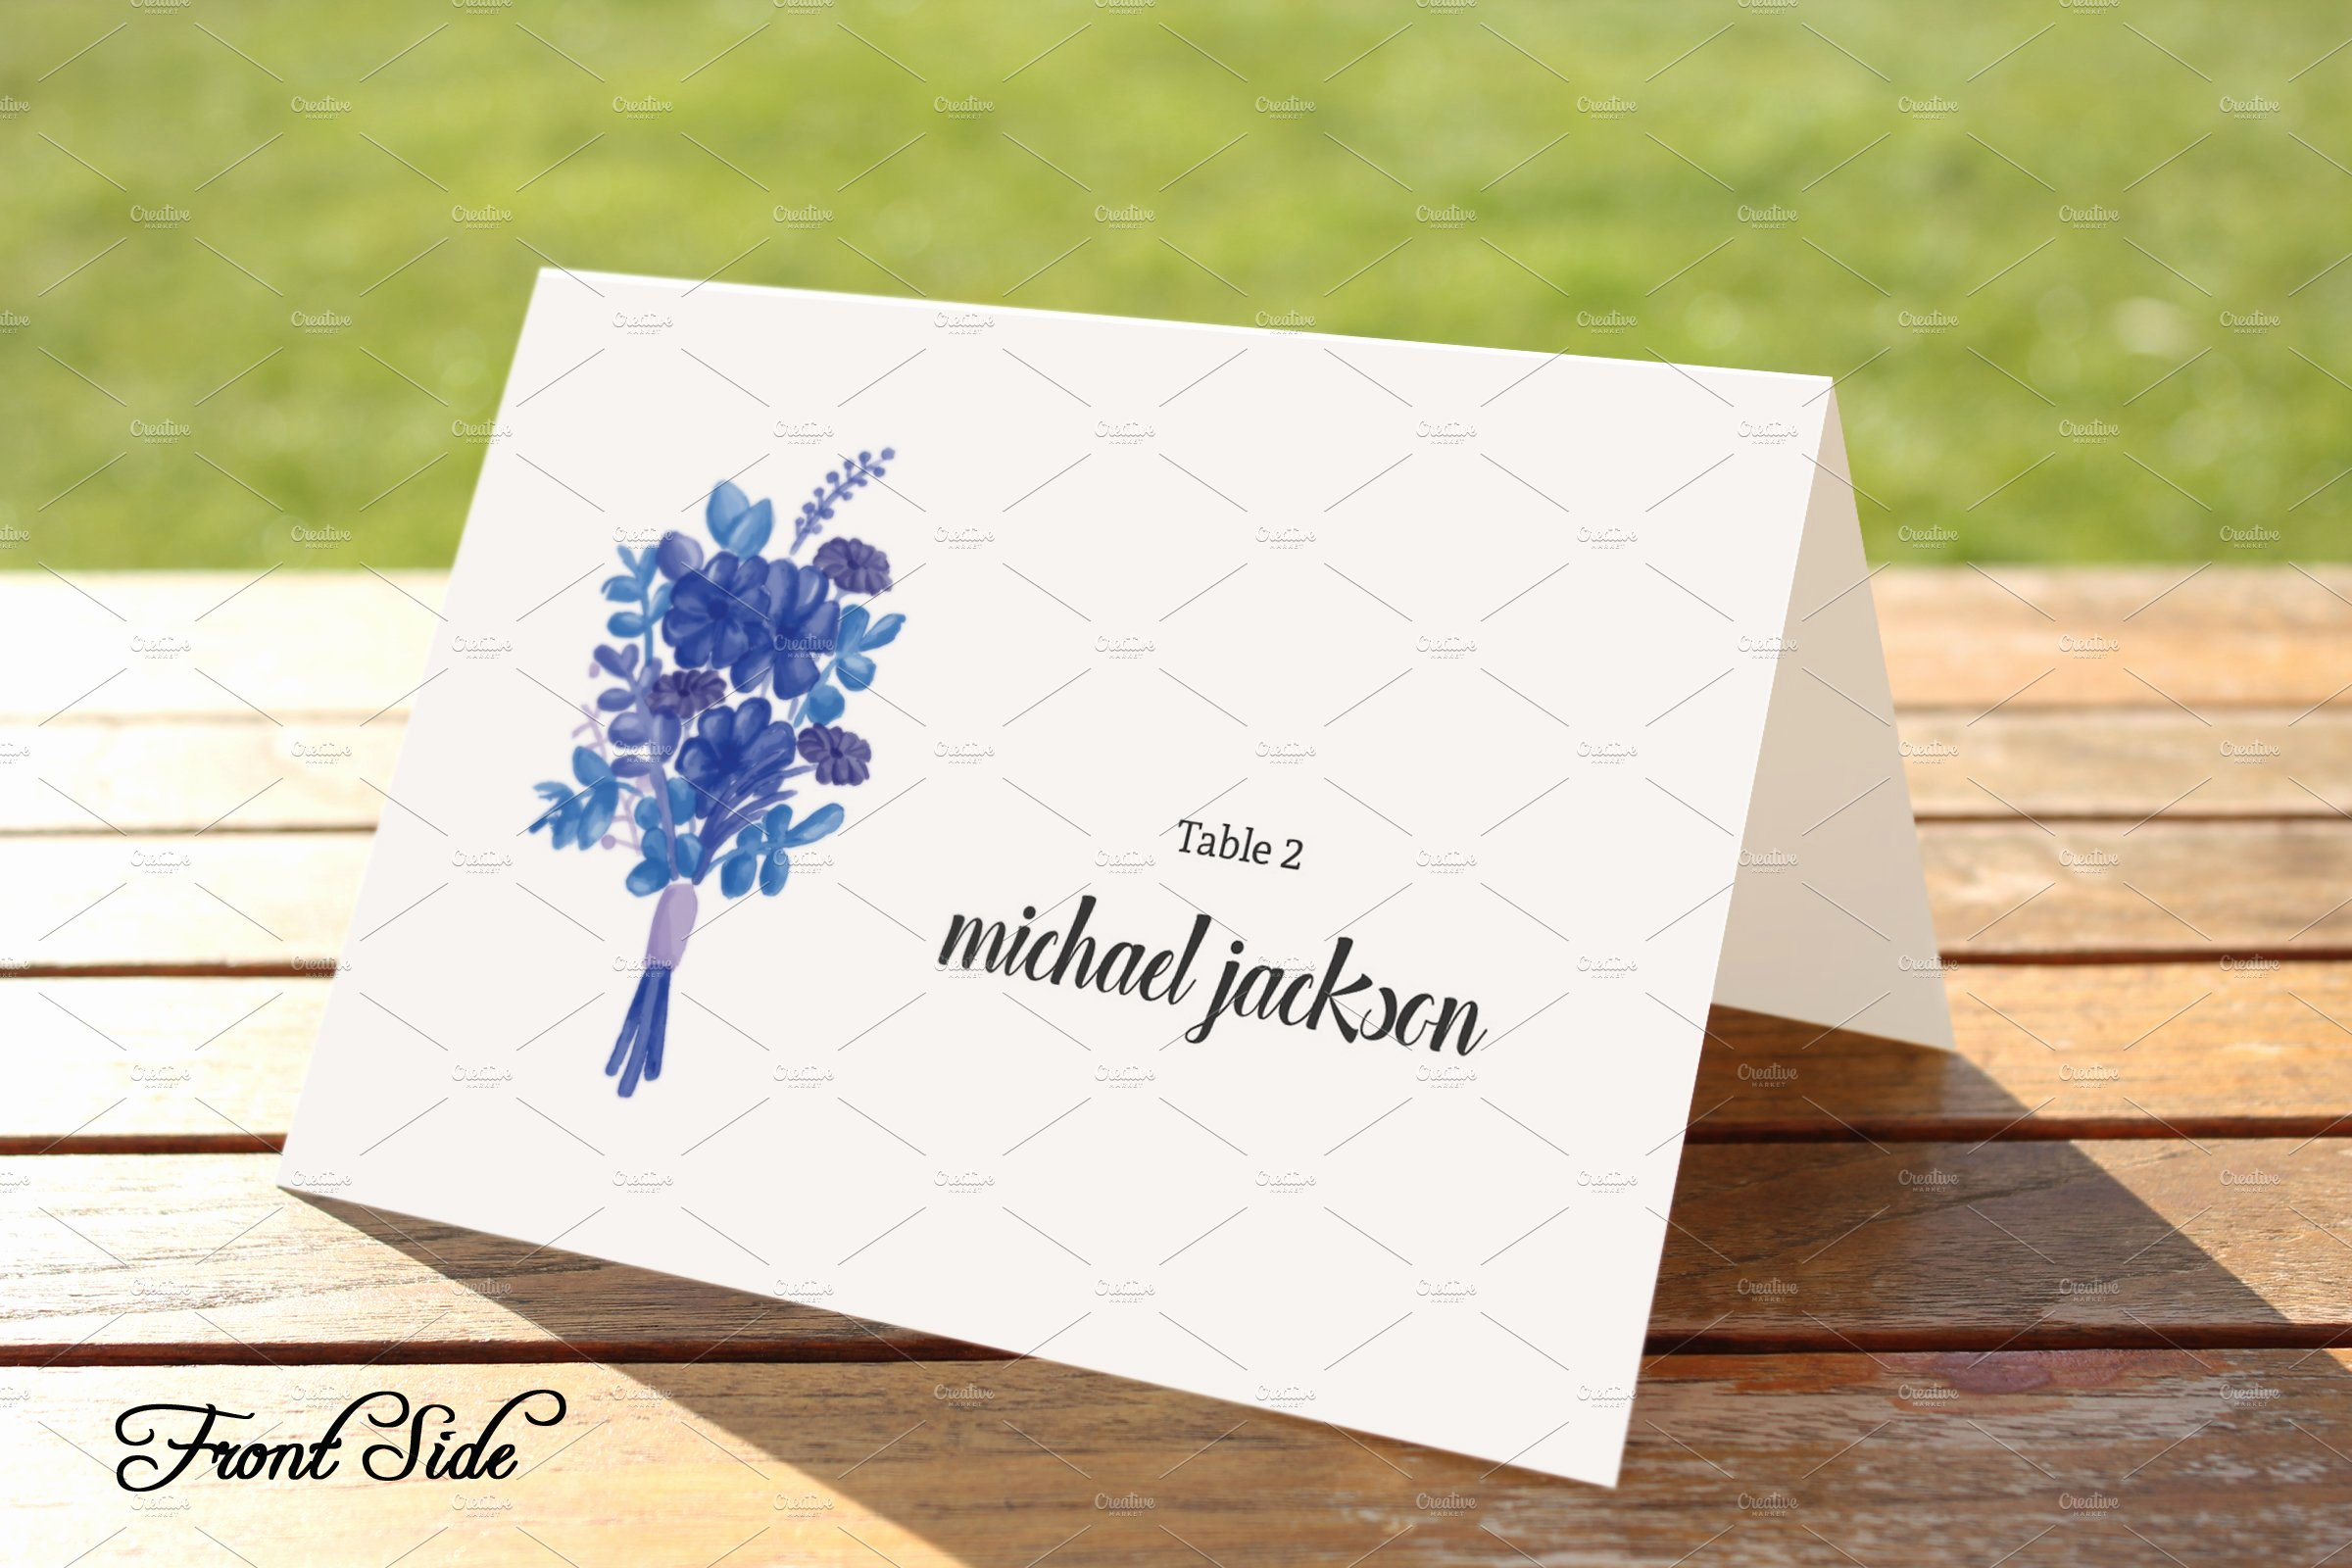 Free Place Card Template 6 Per Sheet Unique Wedding Place Card Template Card Templates Creative Market